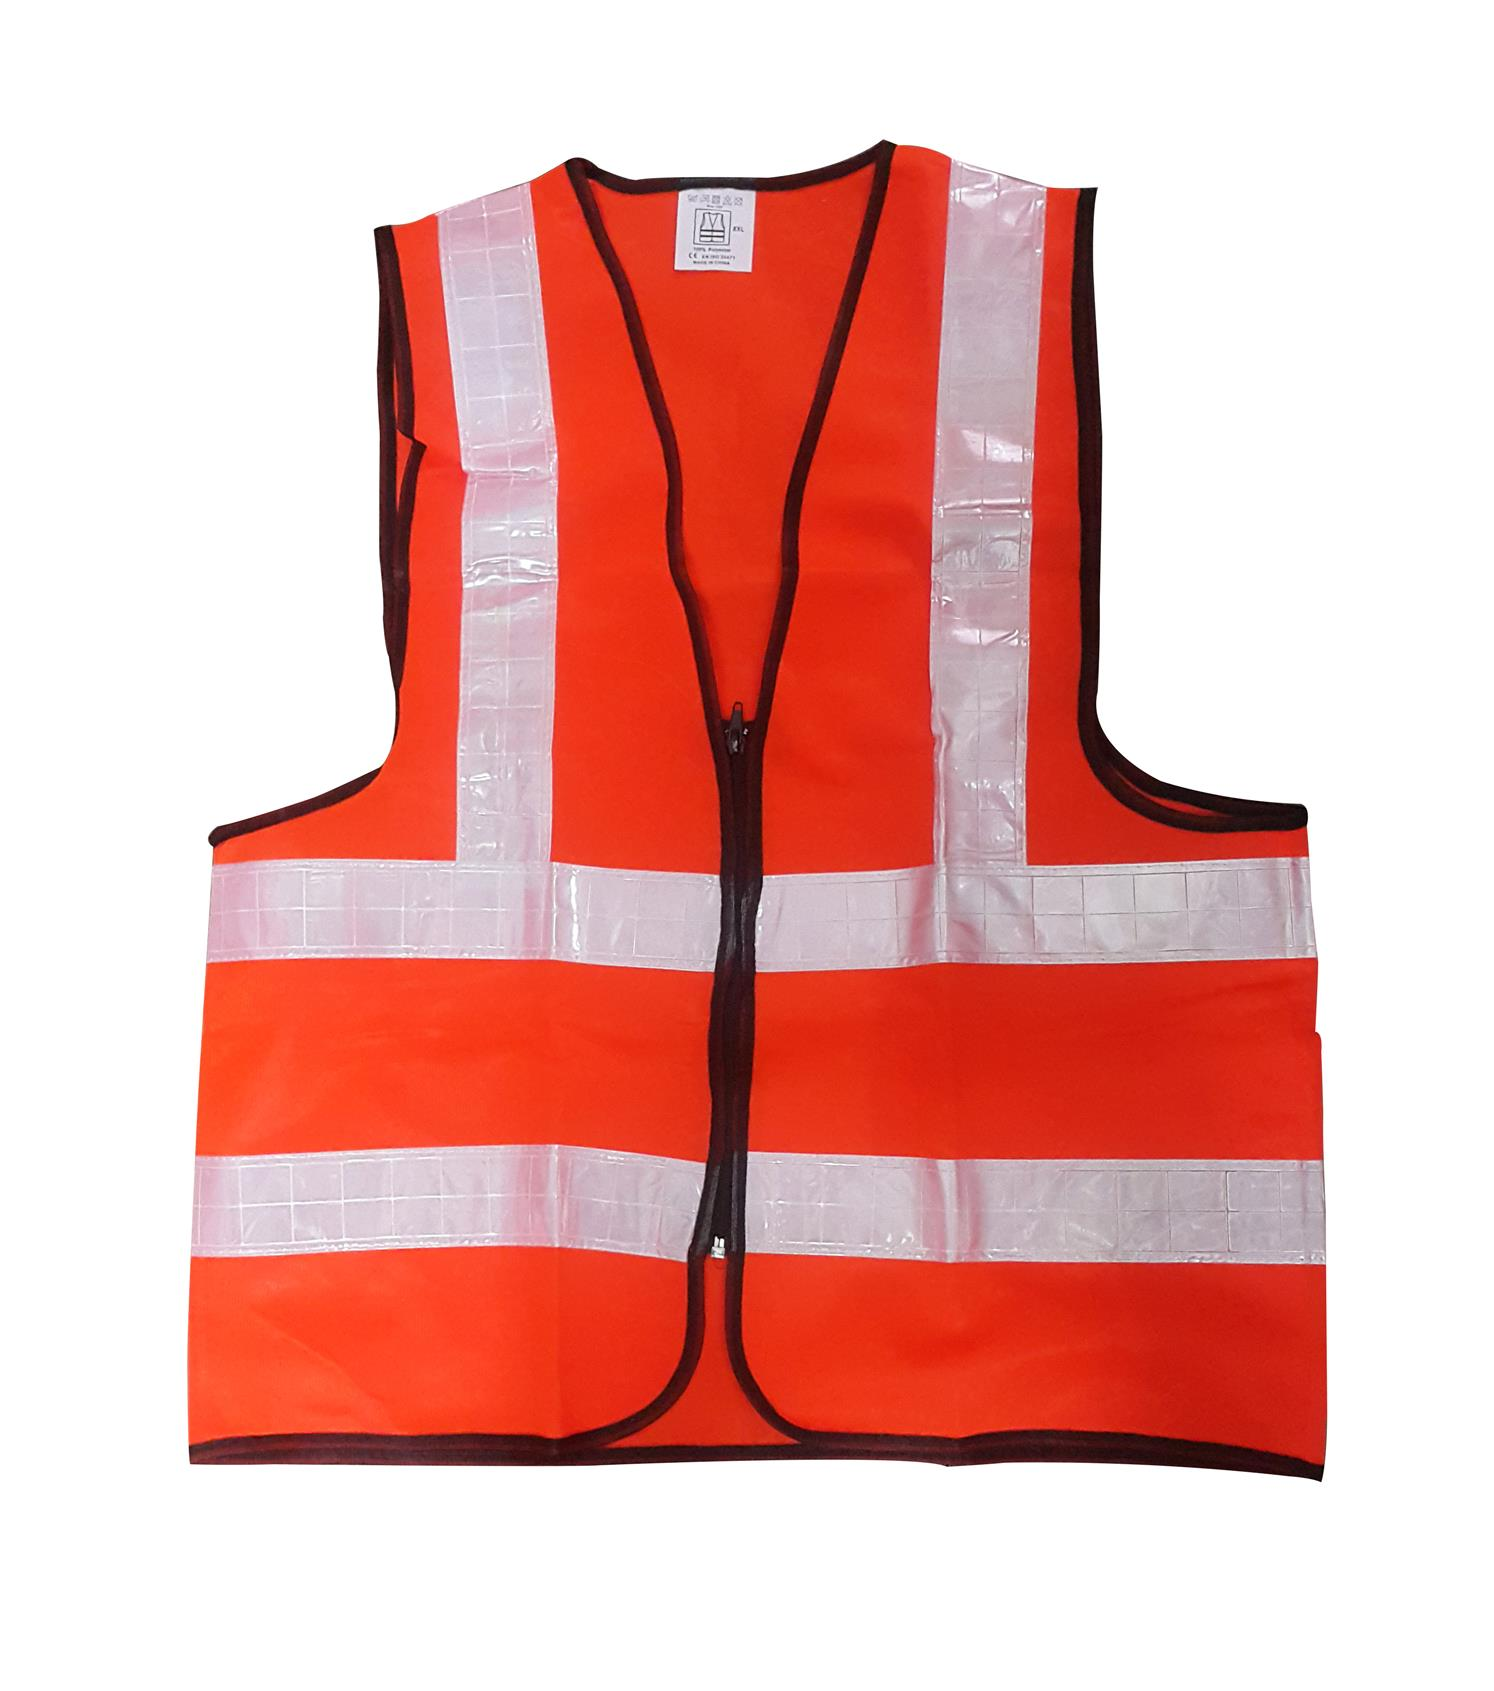 Safety Vest with White Line - Orange